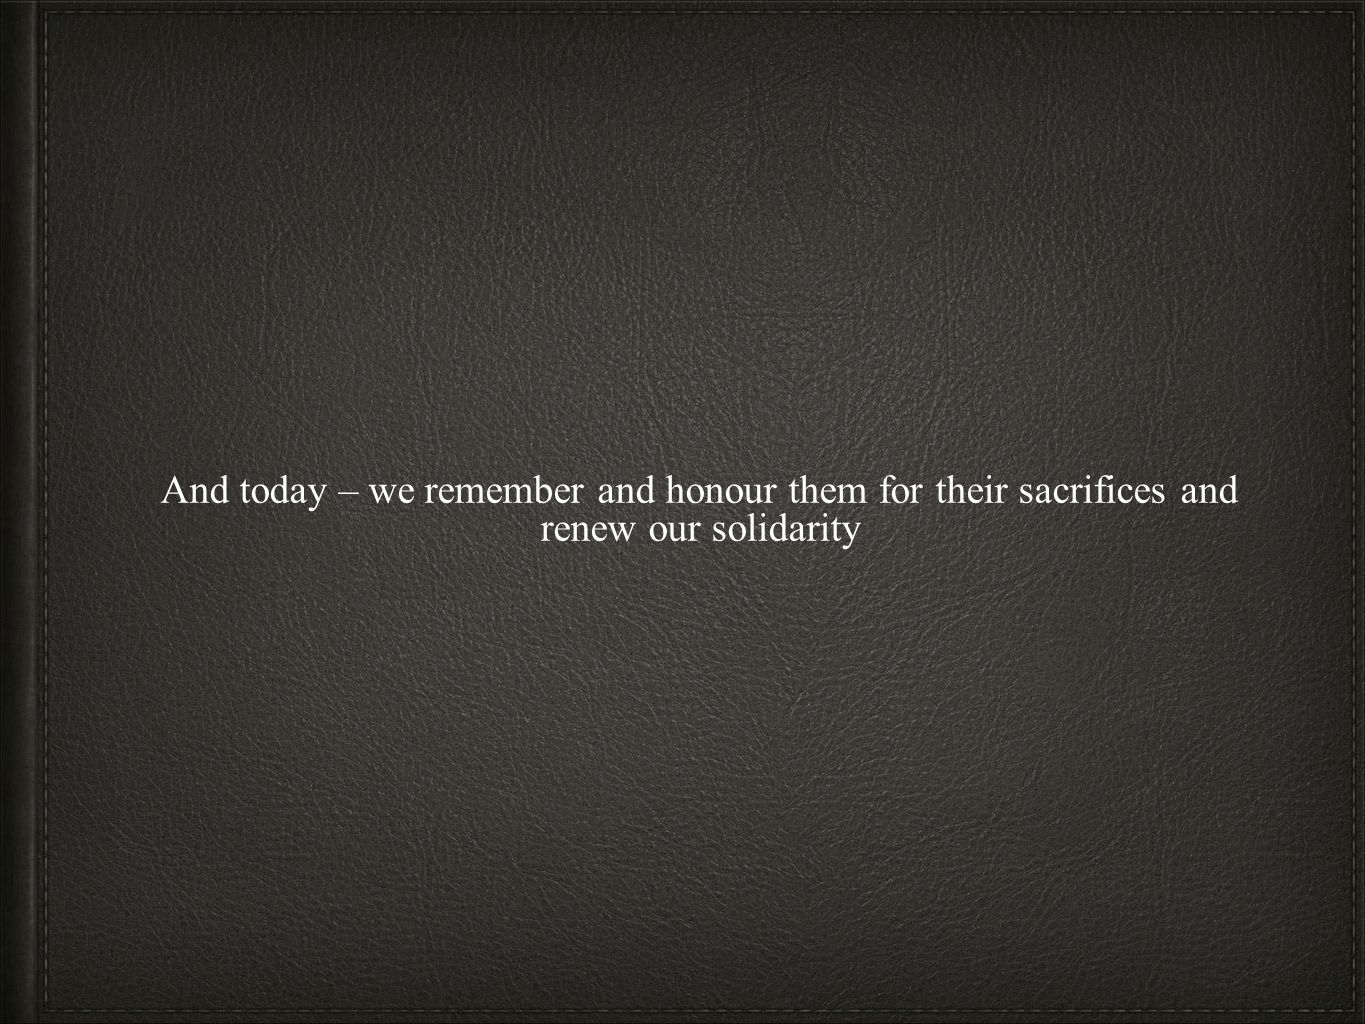 And today – we remember and honour them for their sacrifices and renew our solidarity